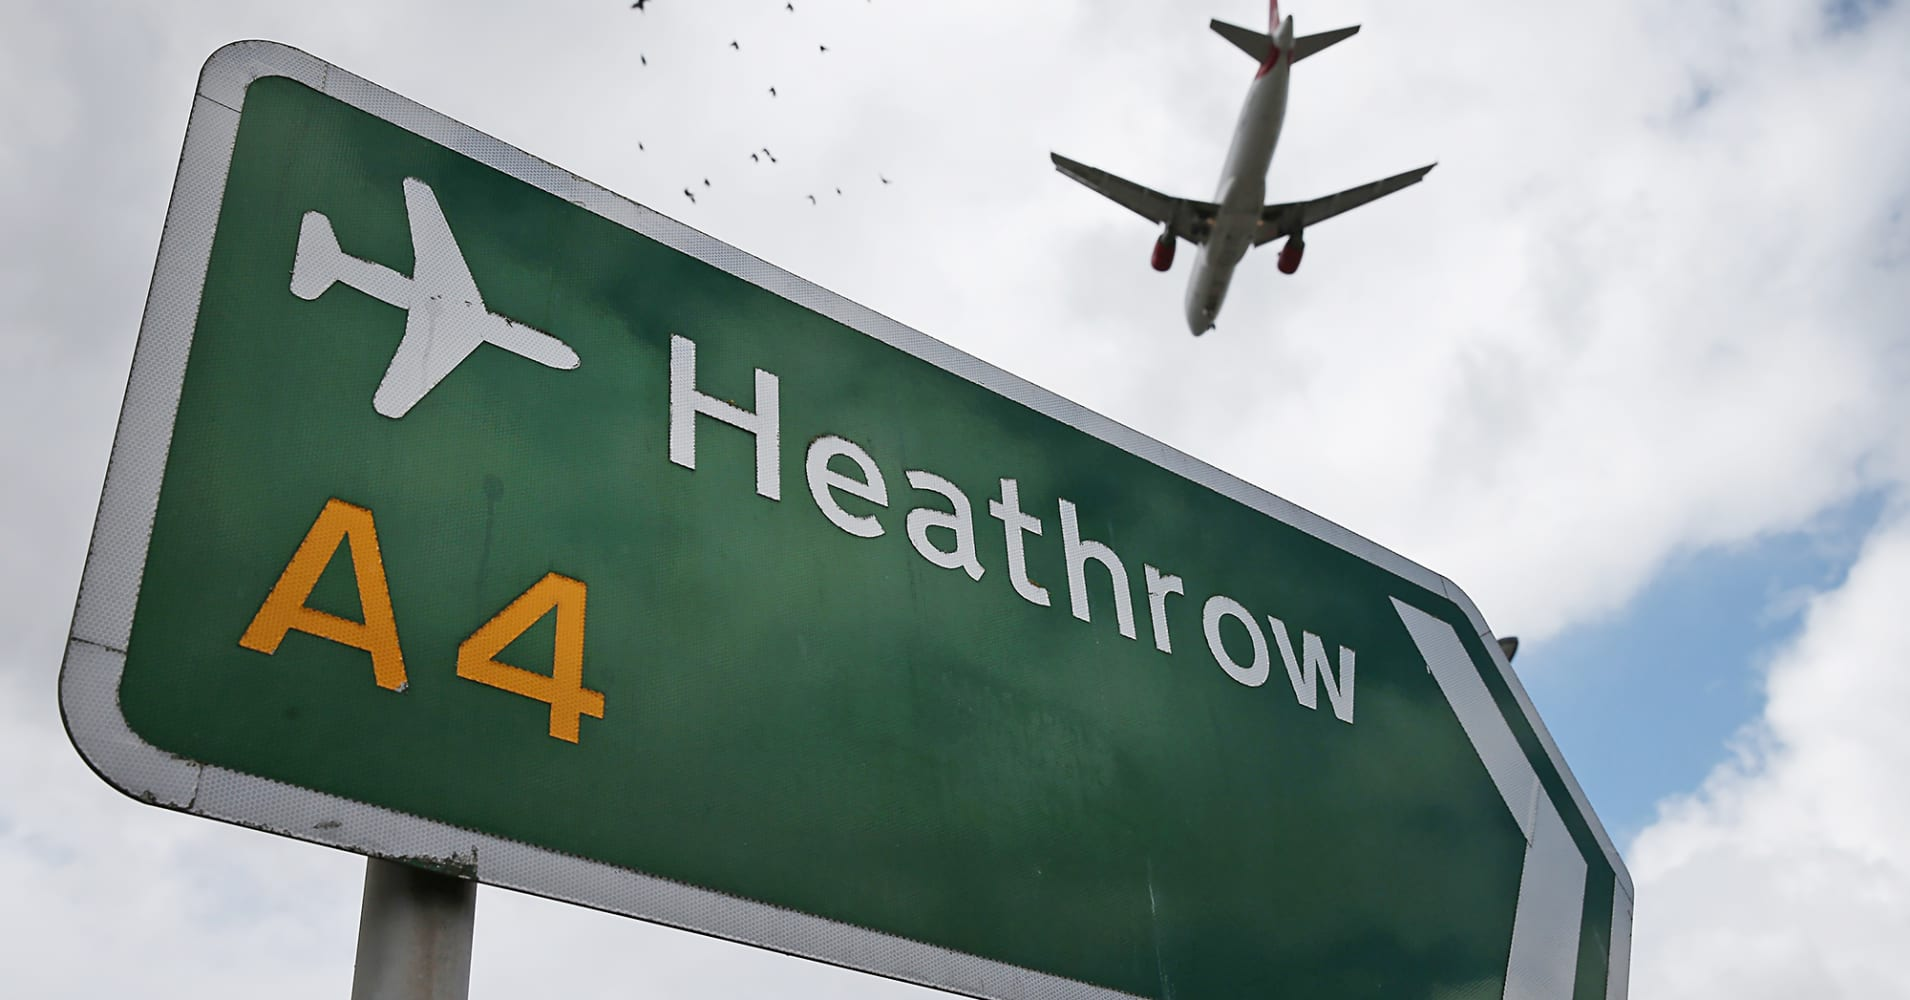 Passengers stranded as Heathrow Airport faces runway lighting issues